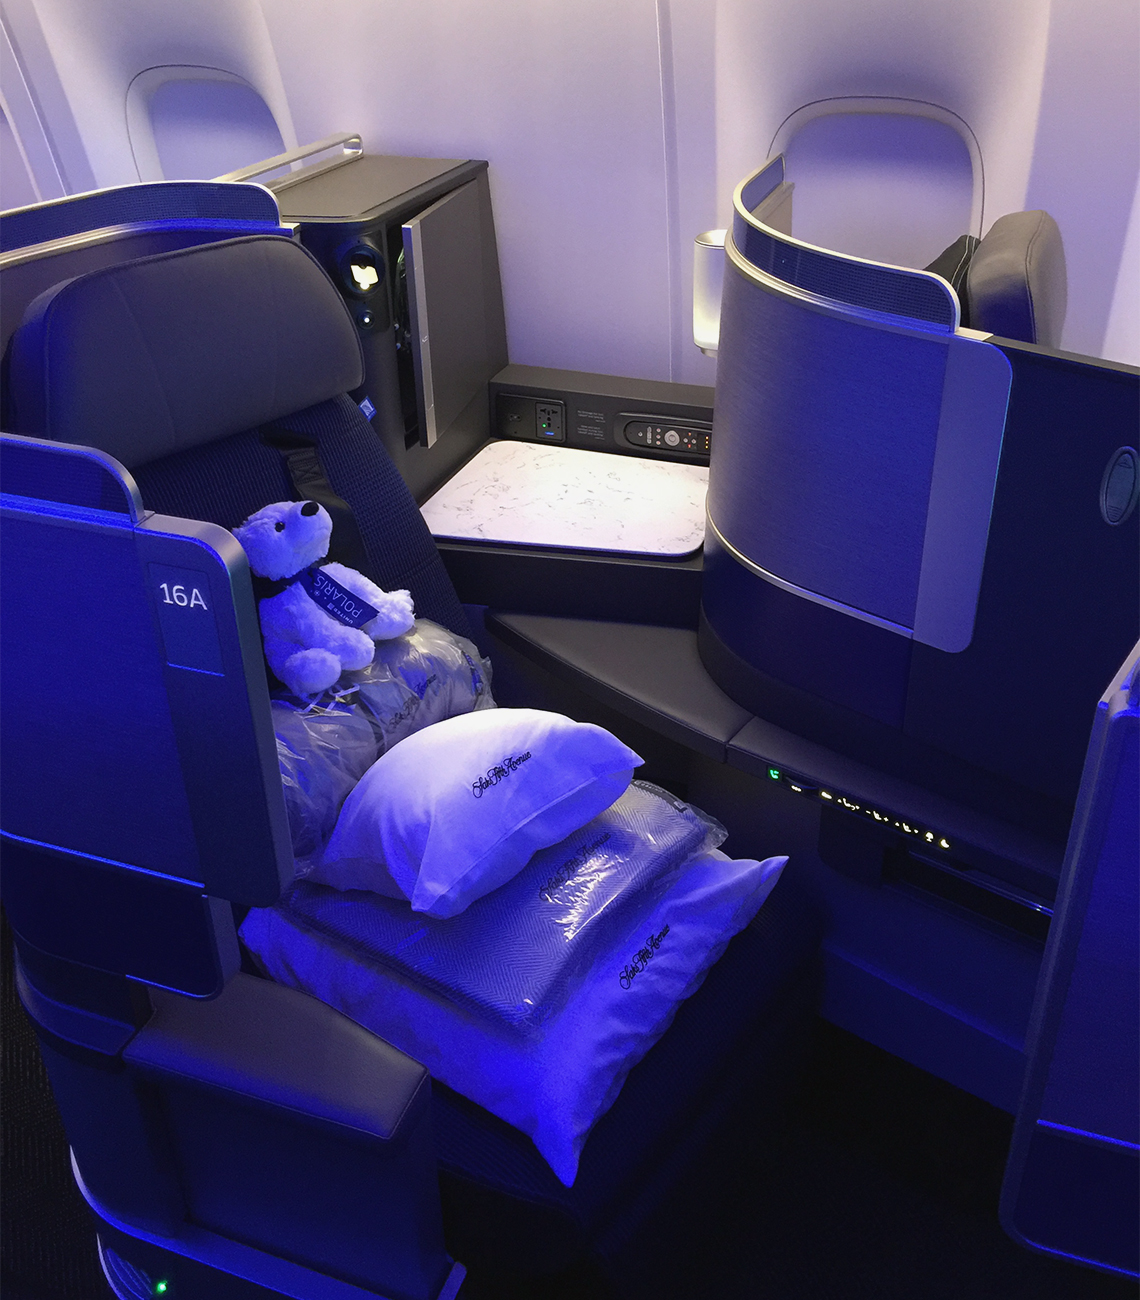 Africa Business Class: United Sweats The Details In New Business Class: Travel Weekly